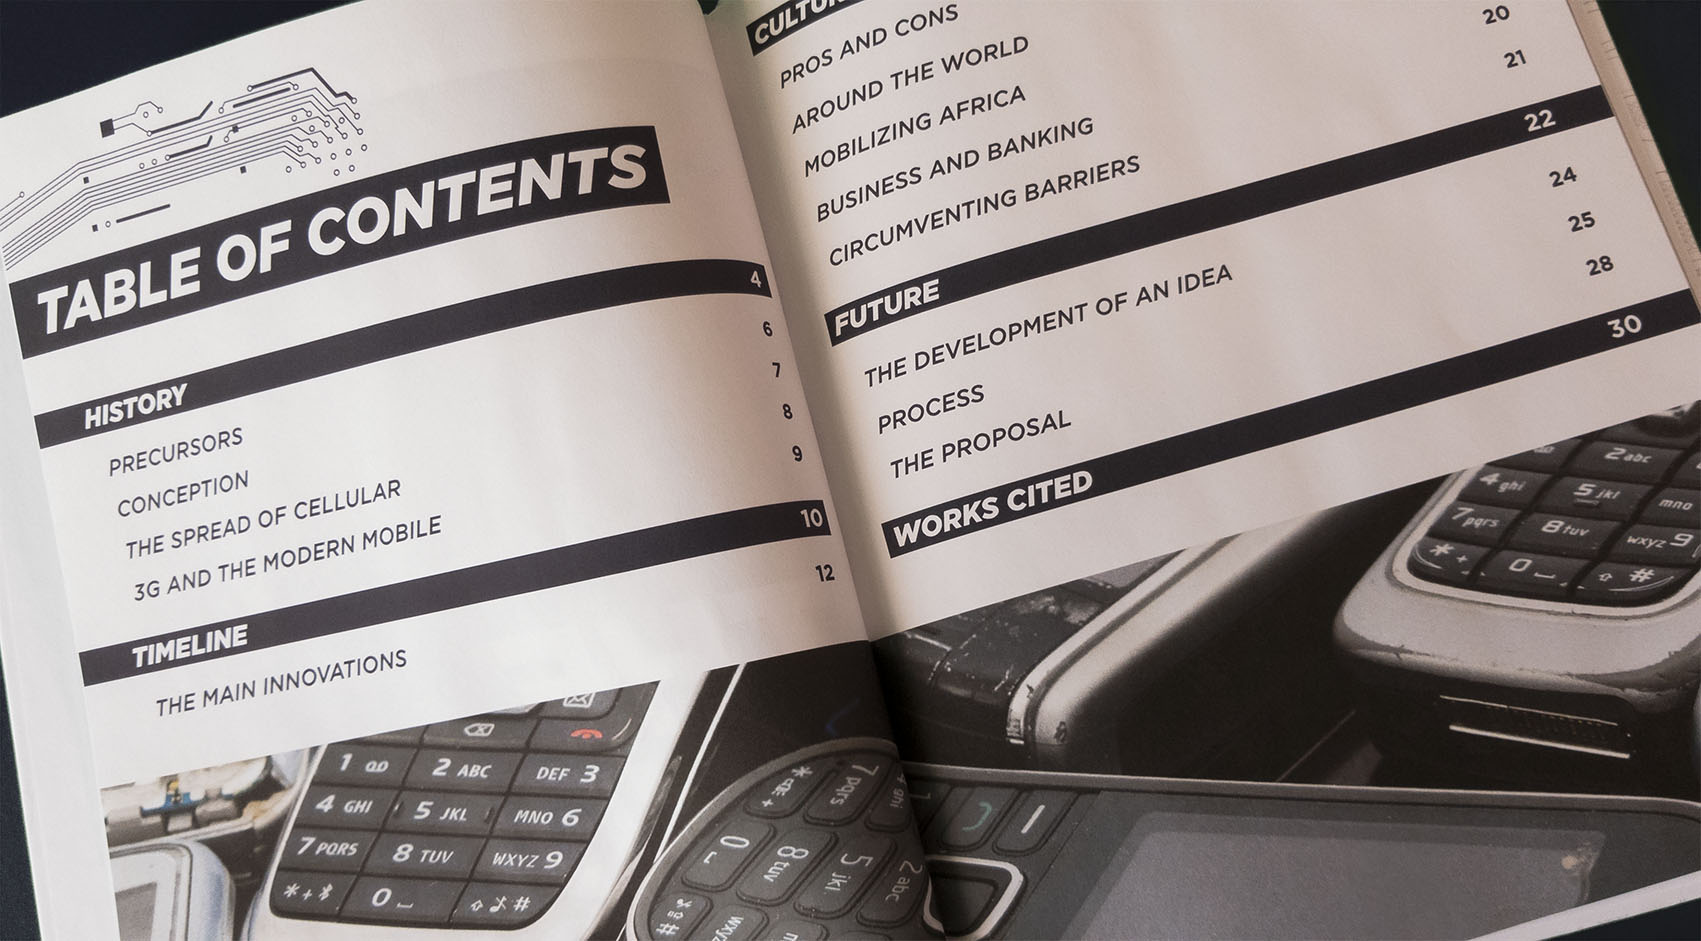 table of contents spread - Each section has subheadings in which to more accurately browse and each section is preceded by a full title spread.